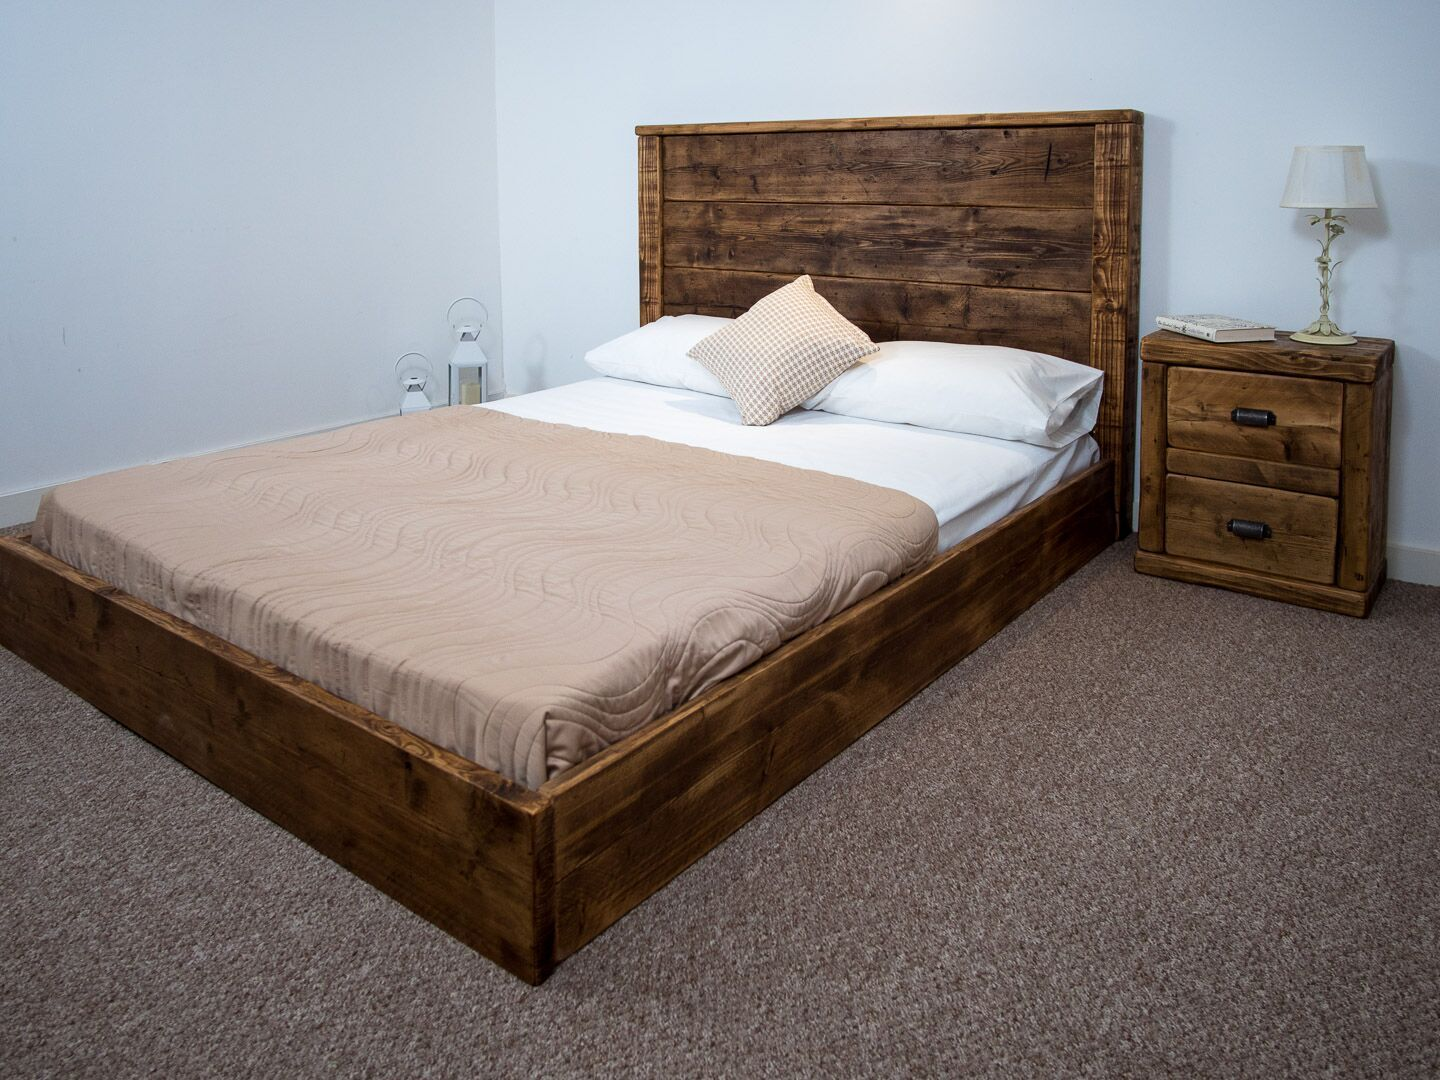 The York Platform Bed Frame Chunky reclaimed pine wood all sizes available  FREE UK DELIVERY